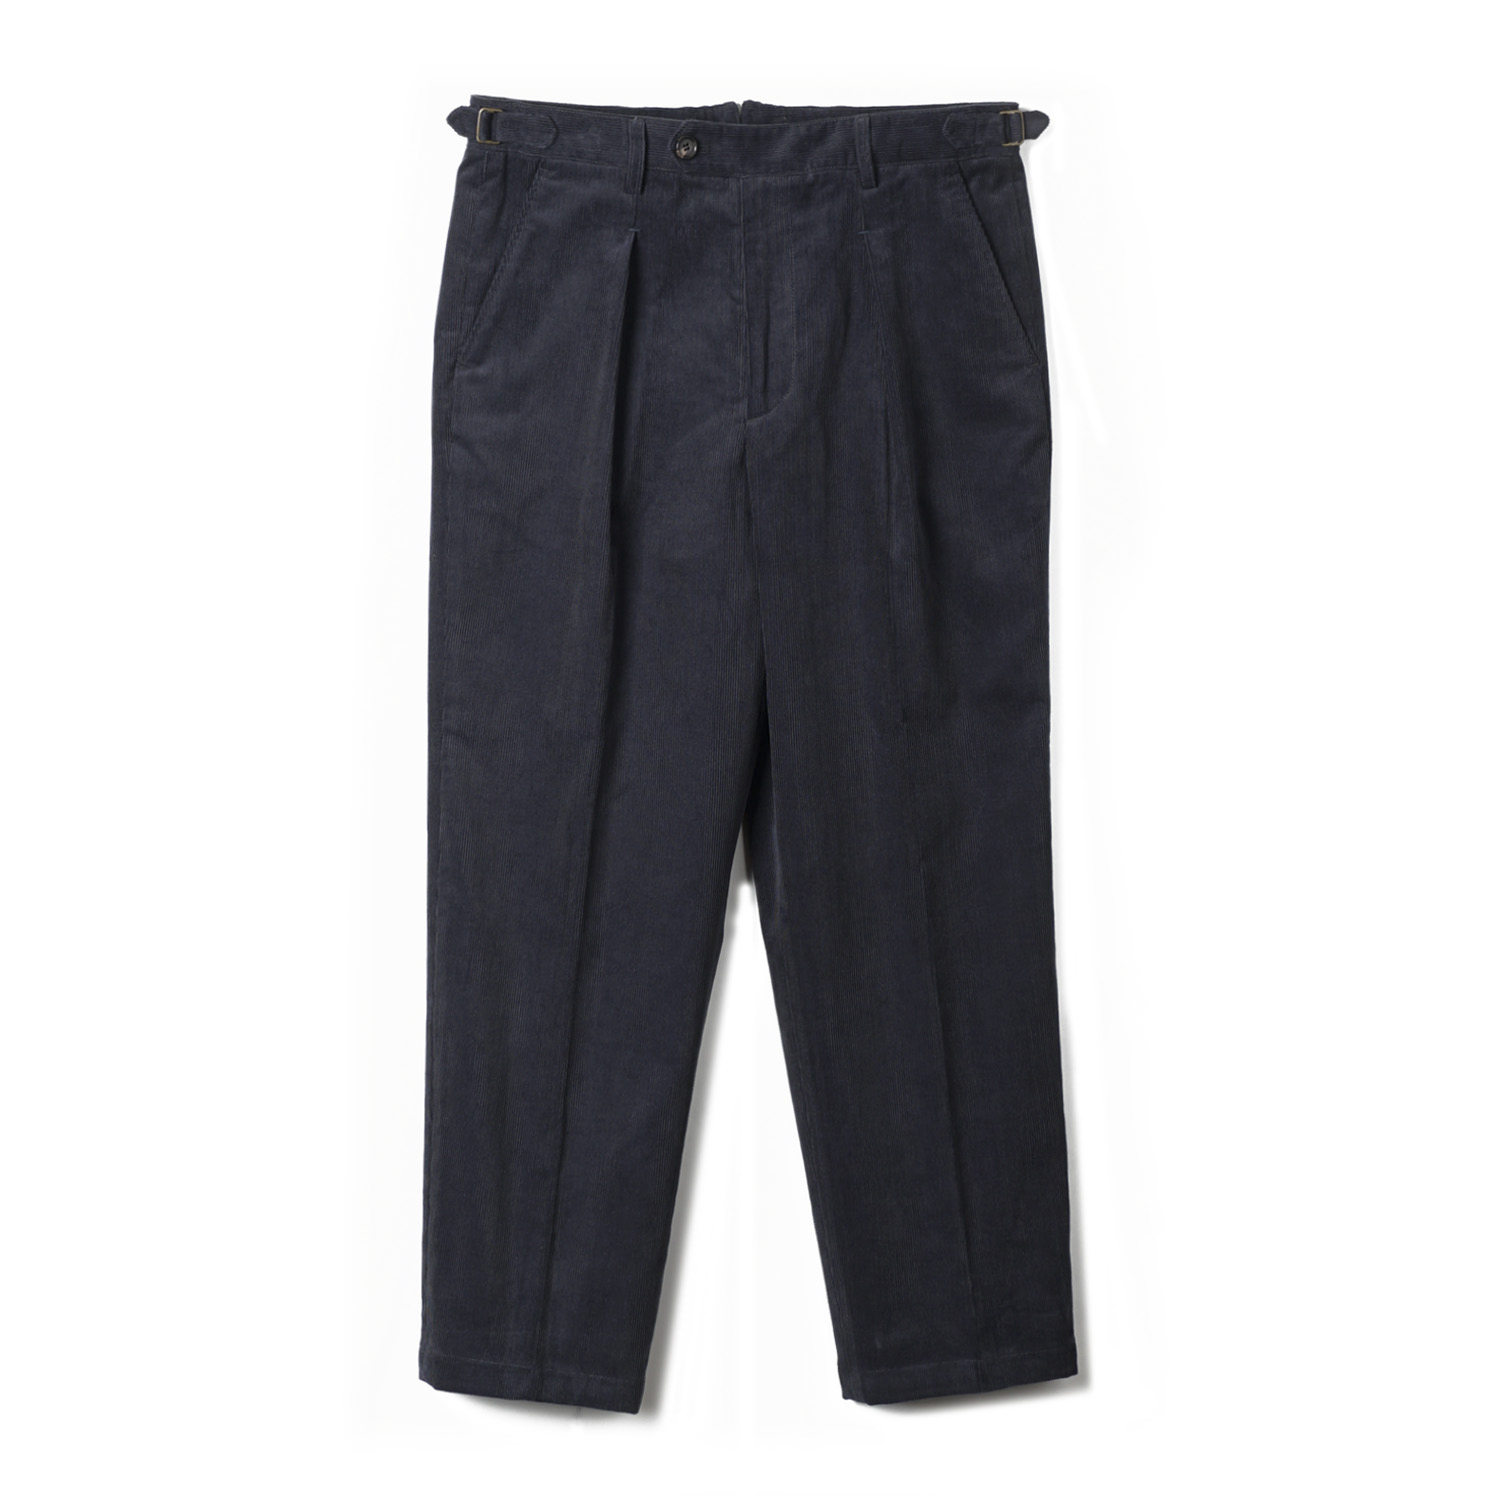 TJA Corduroy One-tuck Pants - Navy